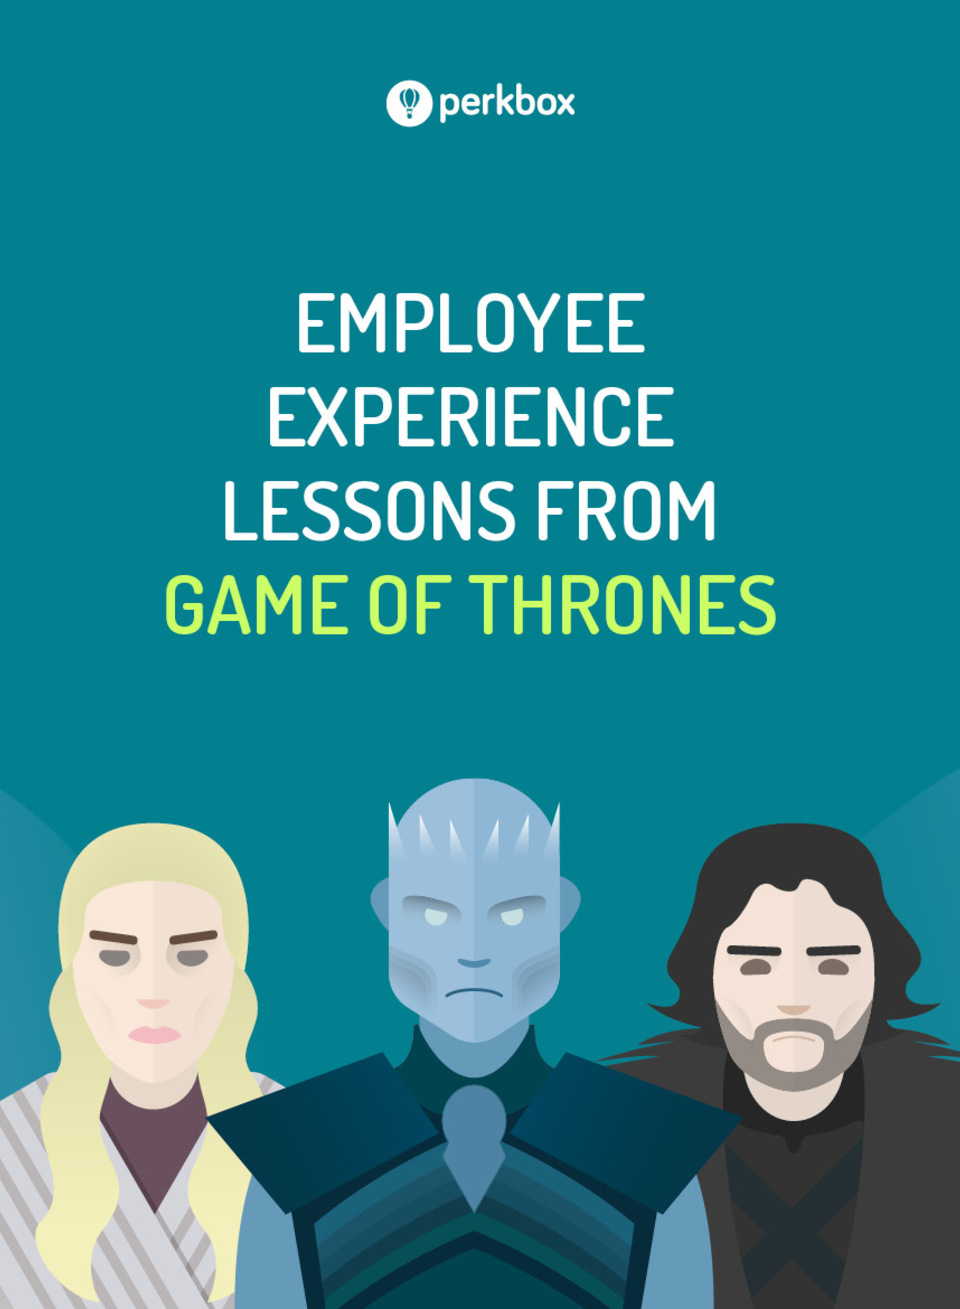 What we can learn about the employee experience from Game of Thrones